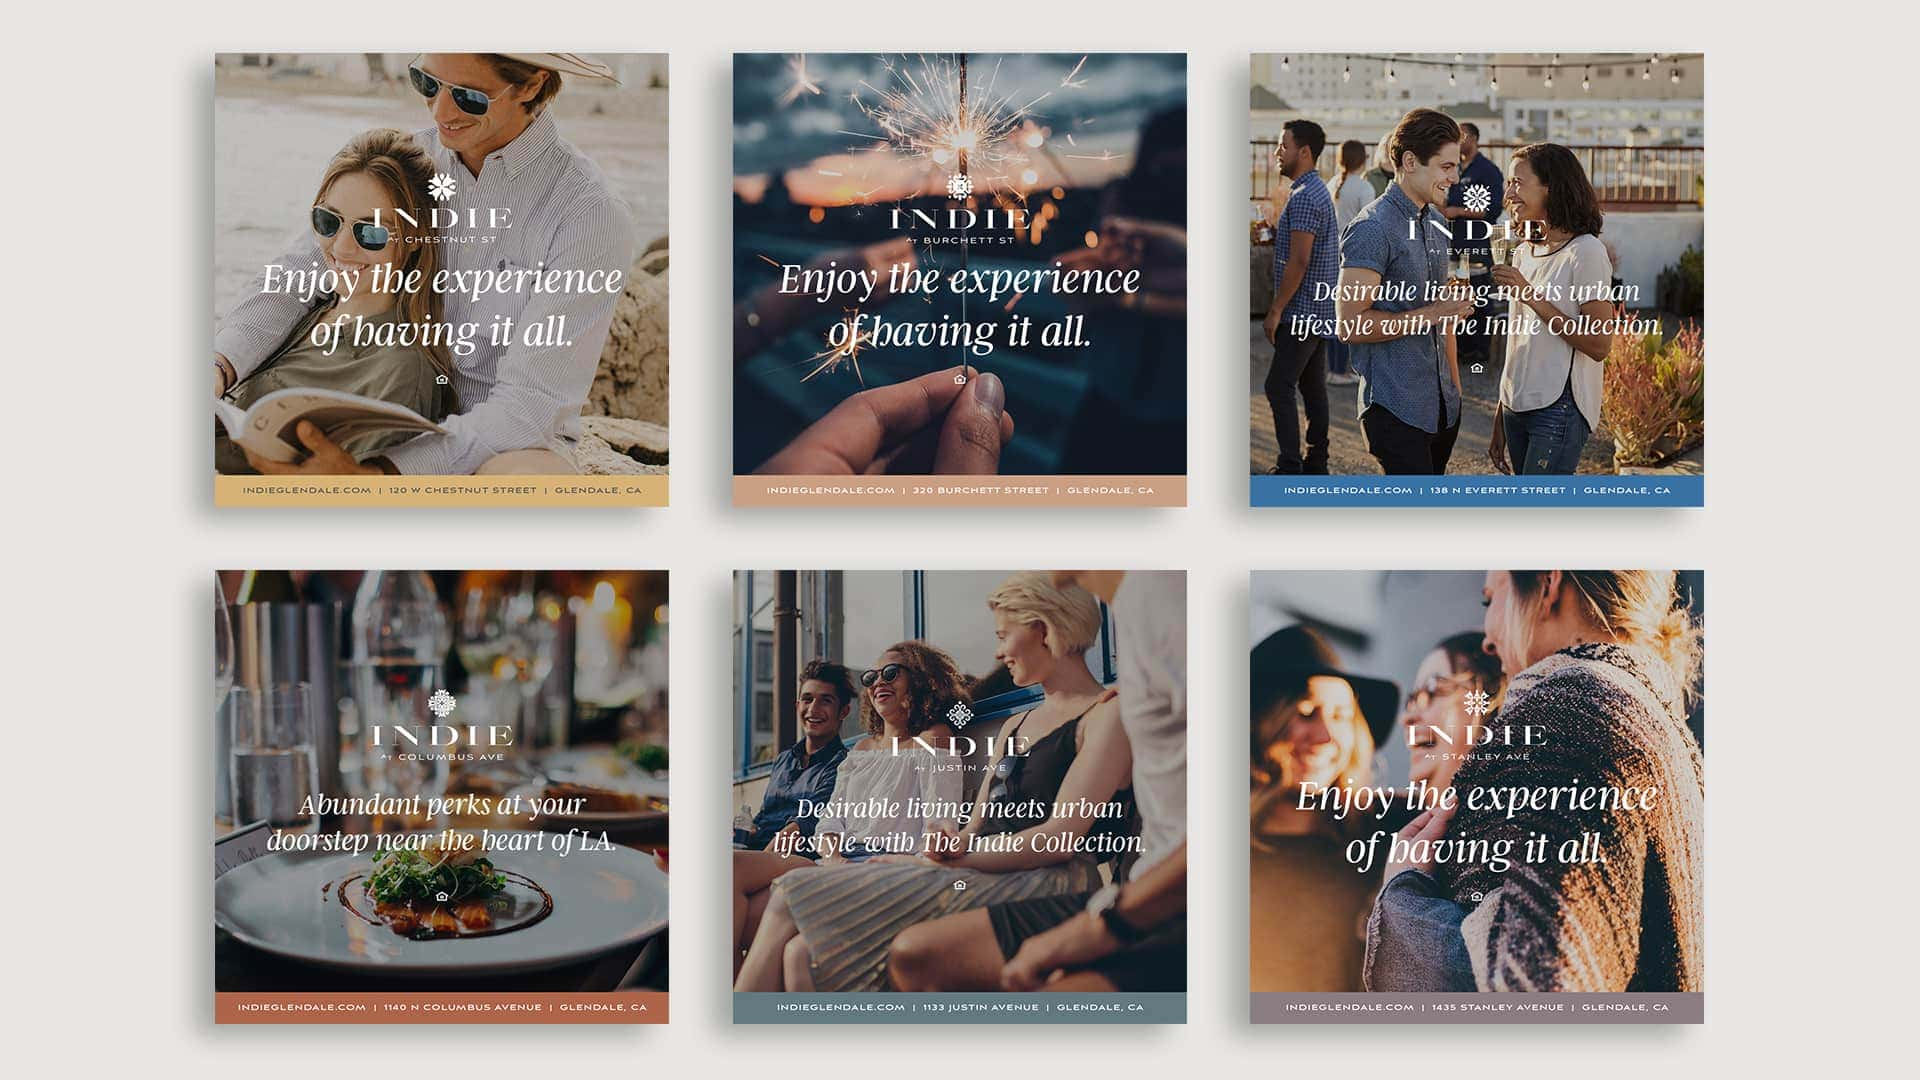 The Indie Collection Social Media Posts - Unsung Studio Branding